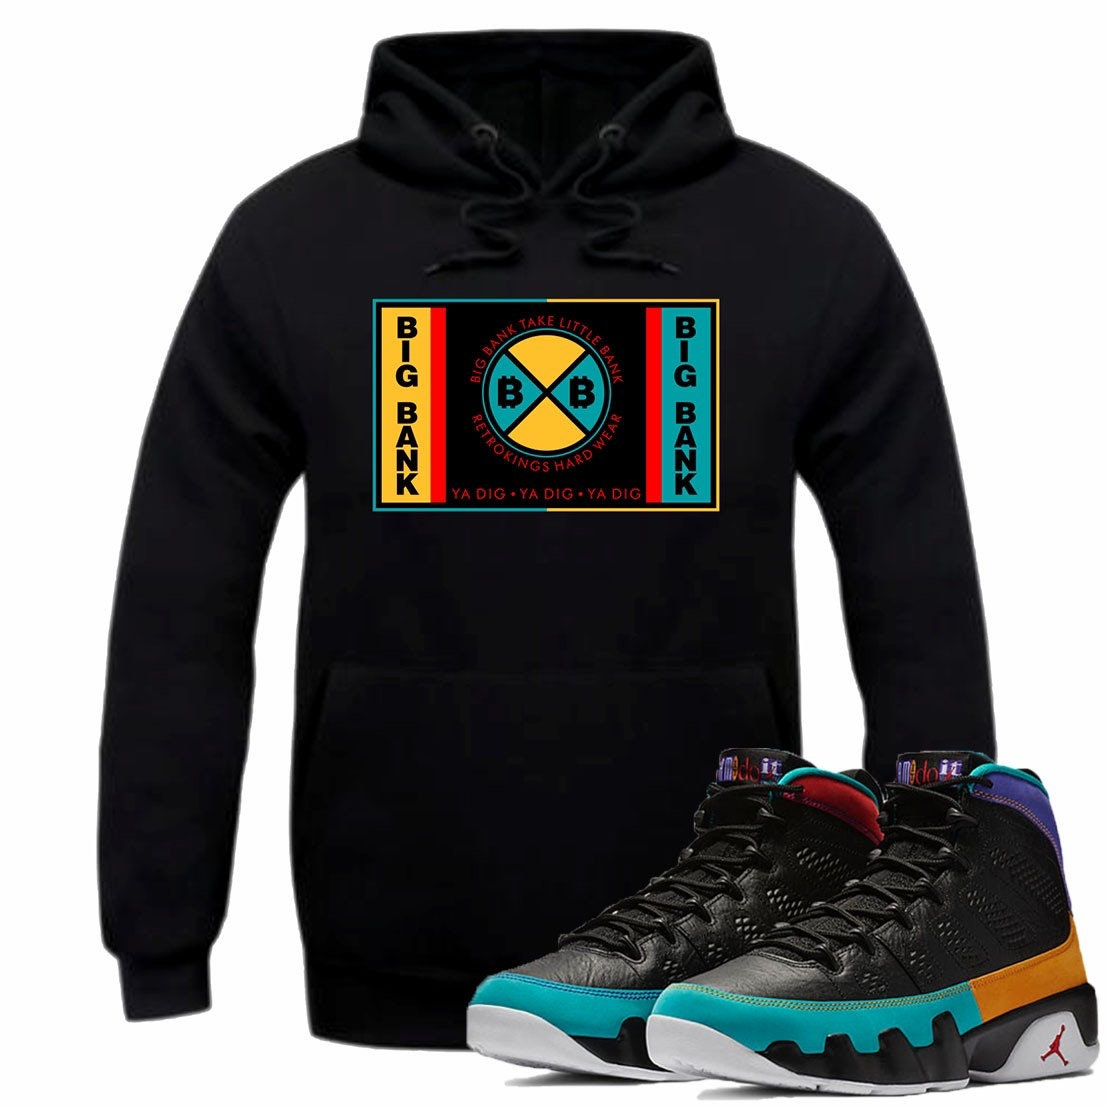 promo code 54962 d5d9d Air Jordan IX 9 Dream it Do it Flight Nostalgia Hoodie BIG   Etsy